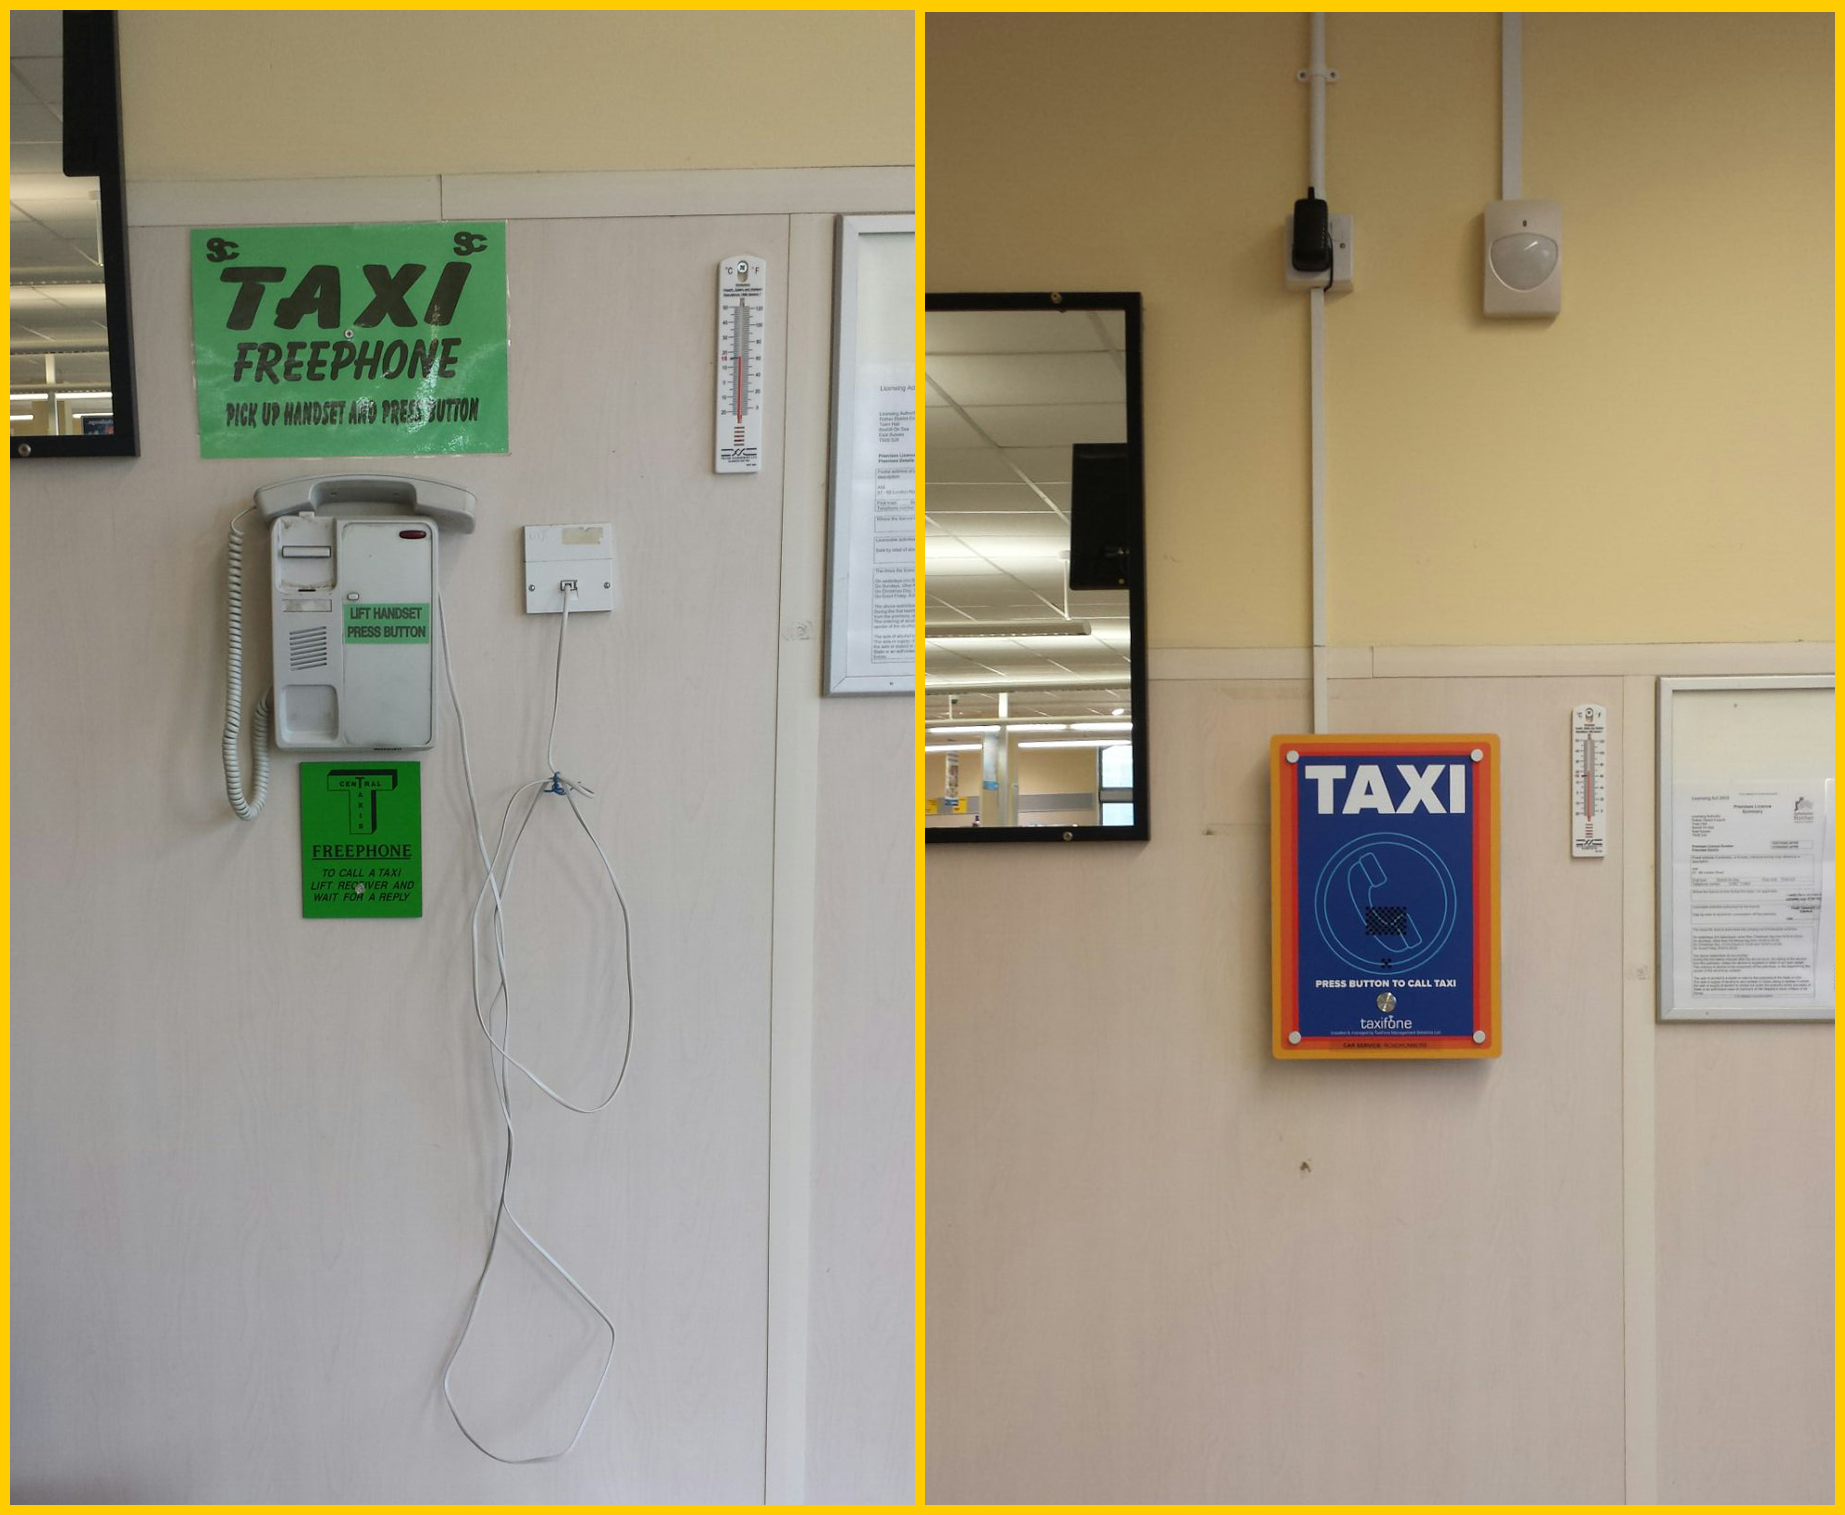 GSM Taxi Phone (3G) Wall Mount for Indoor Locations